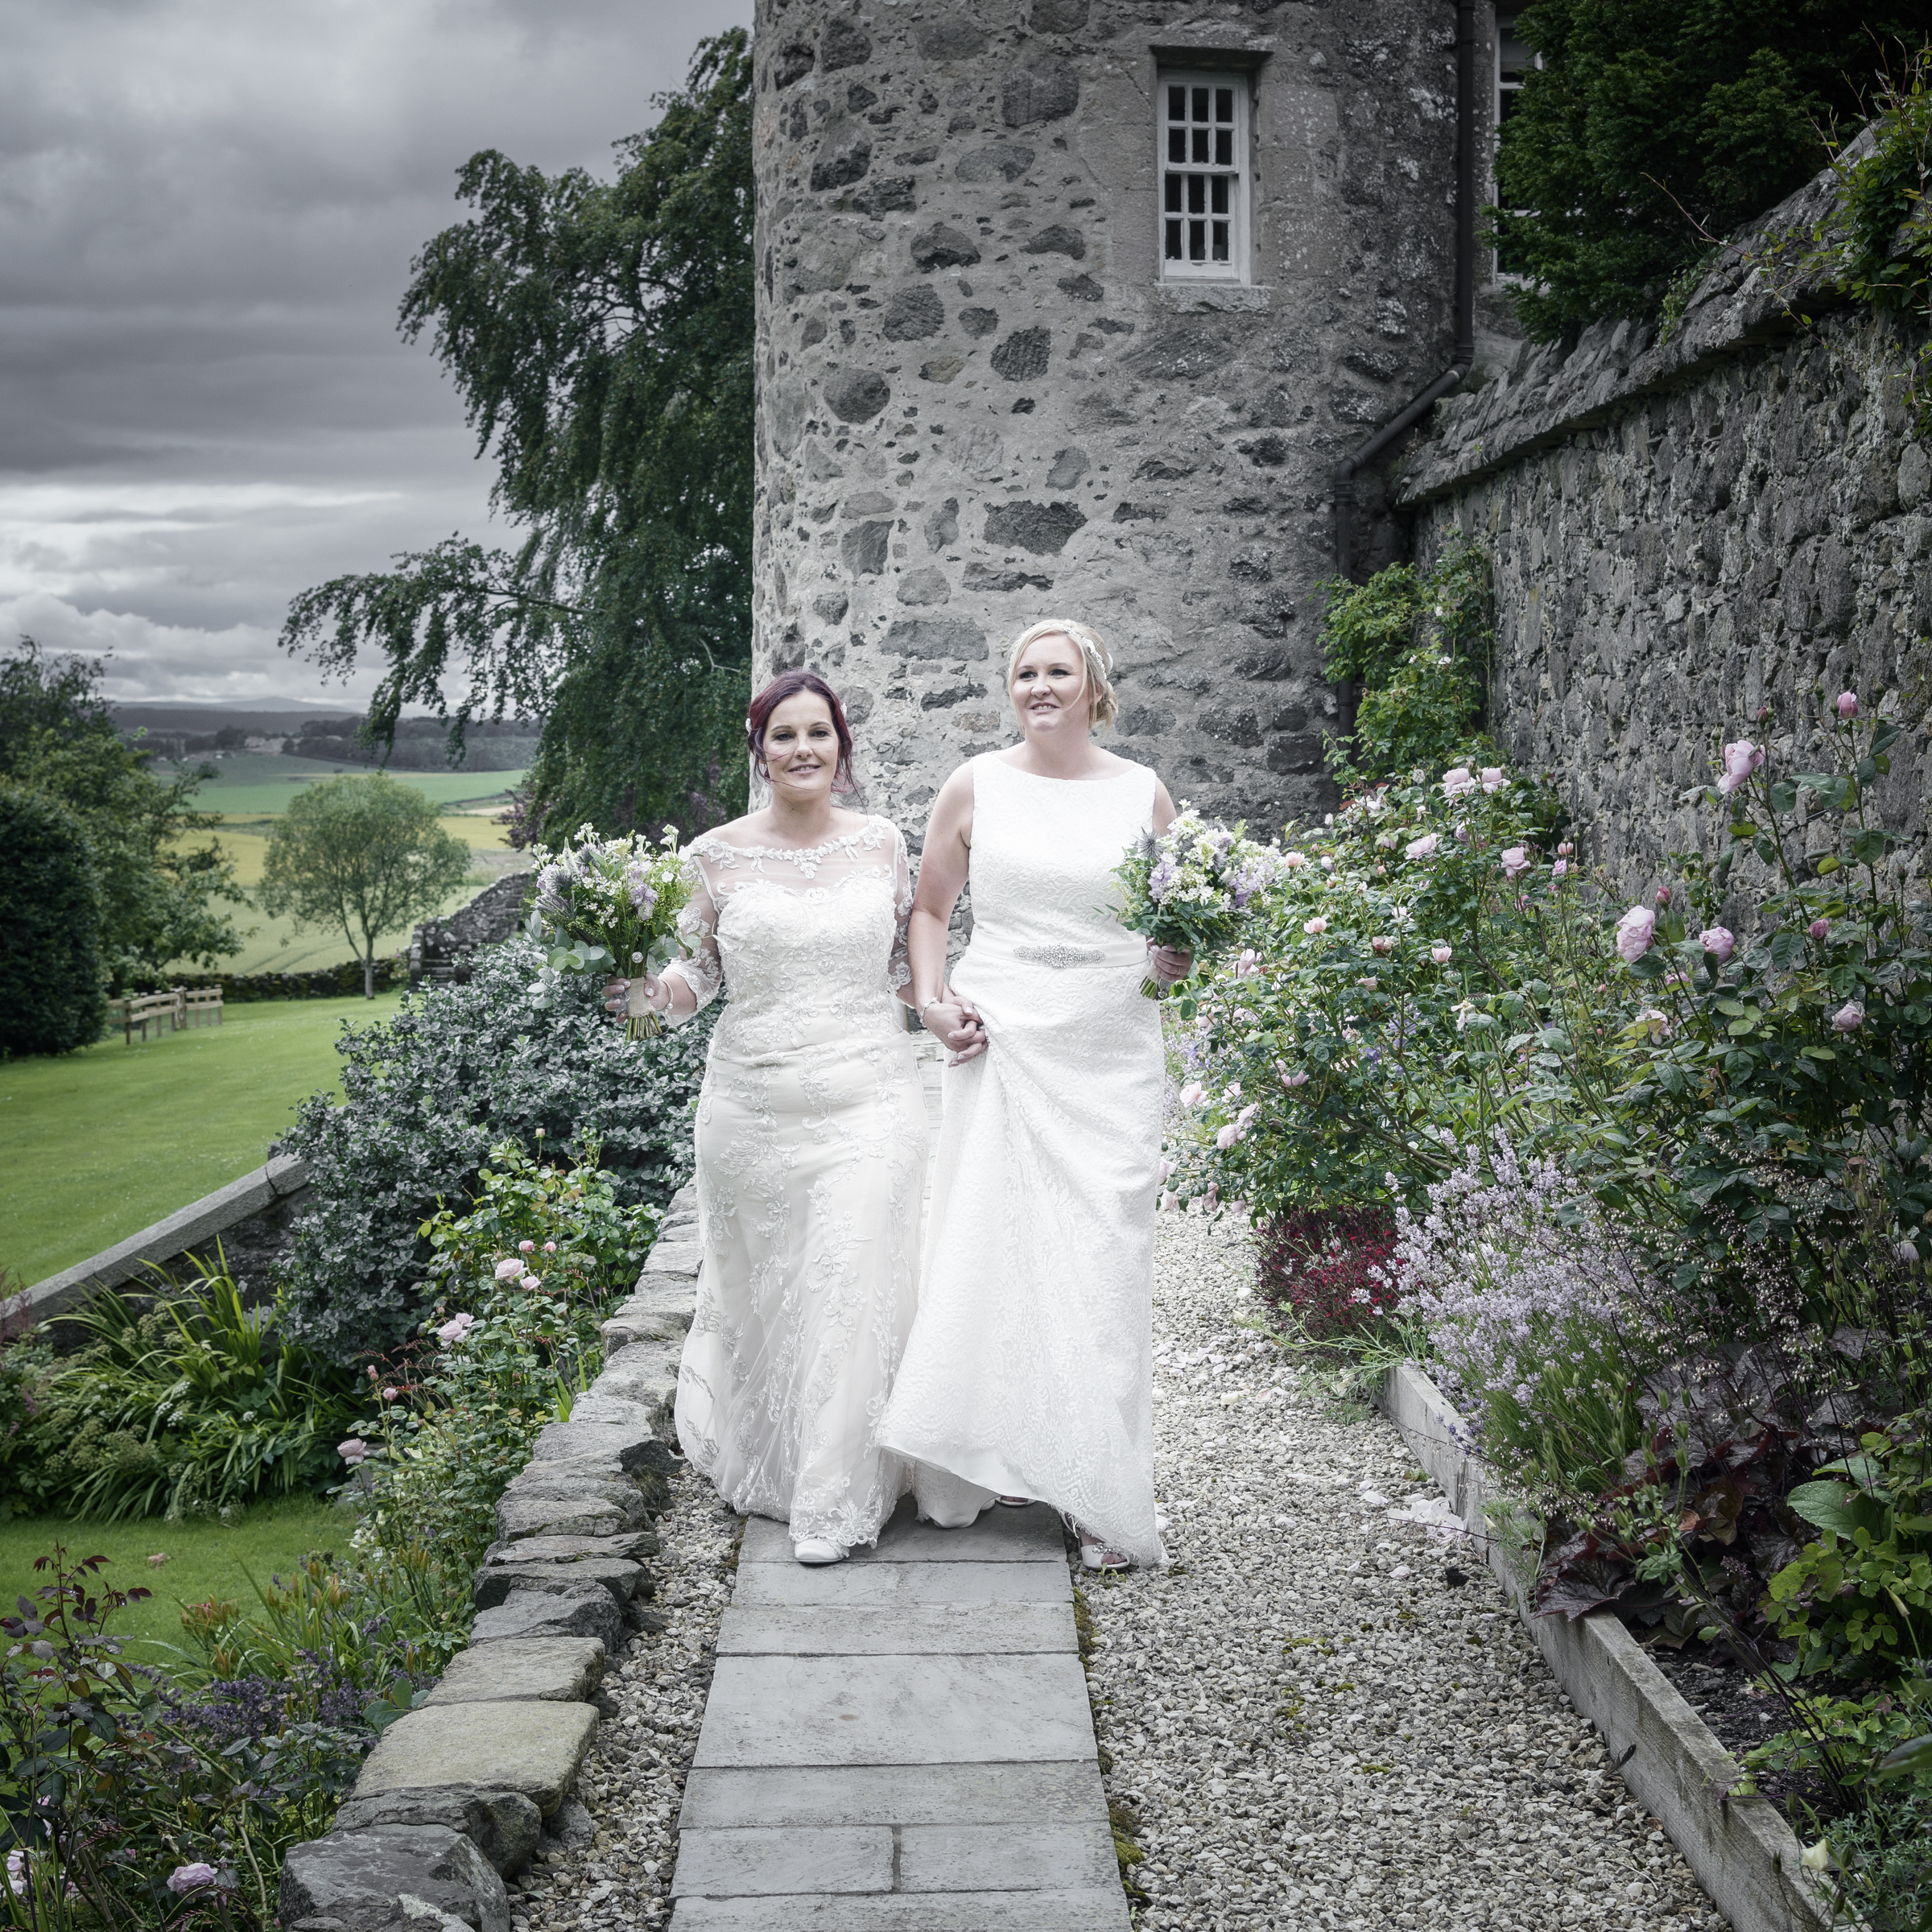 Edinburgh Wedding Photographer - Ewan Mathers